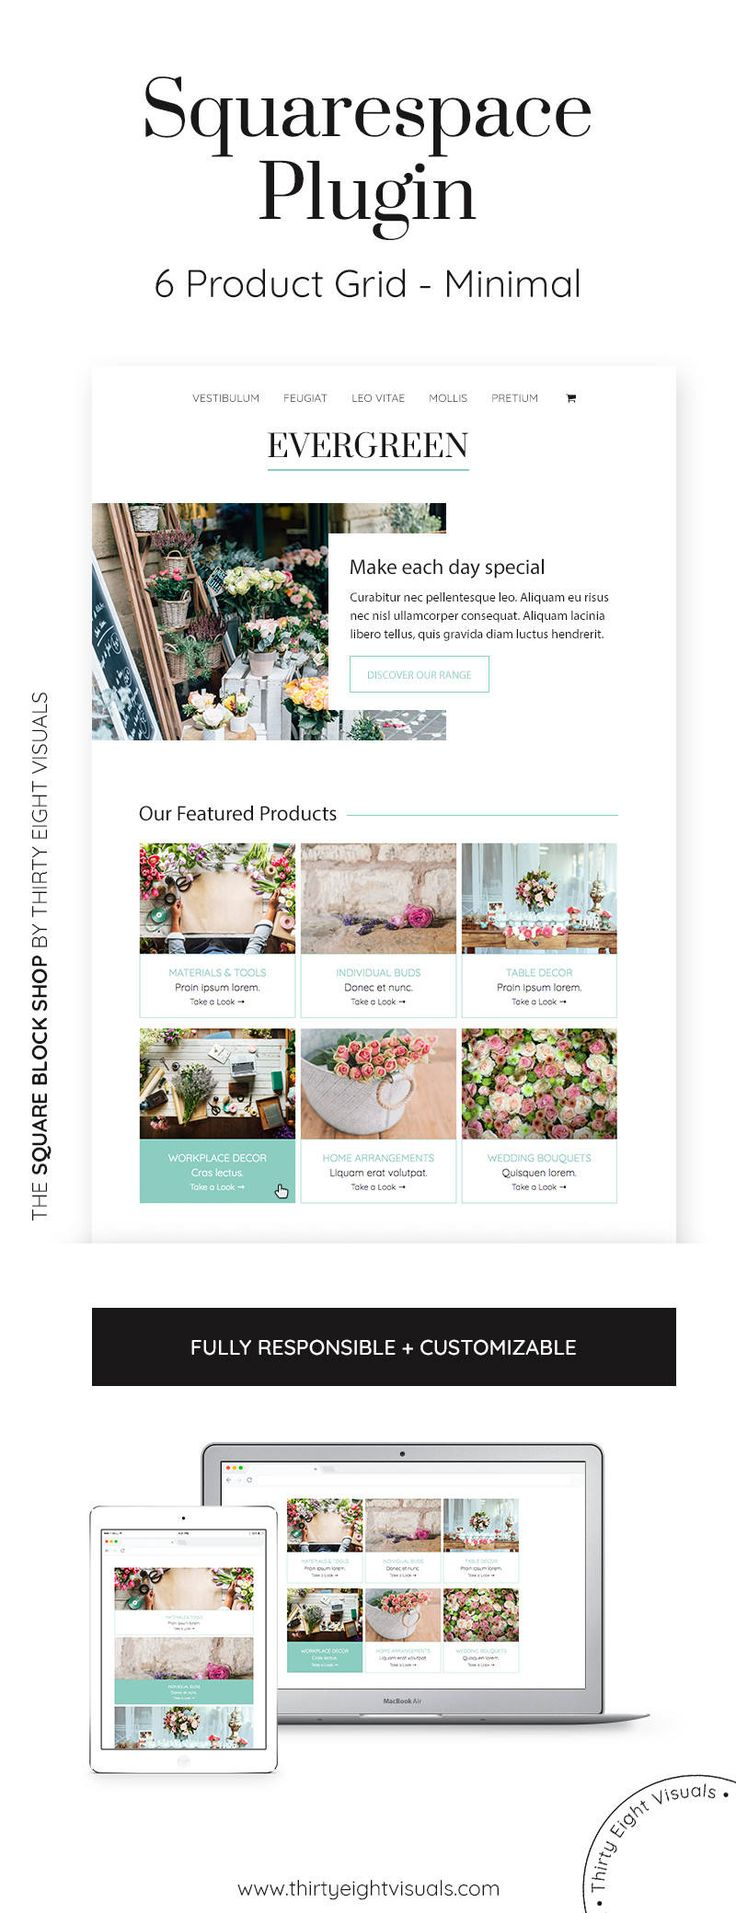 Squarespace plugin - This 6-block grid is perfect for showcasing your featured products or services in a unique way! Click to see it.